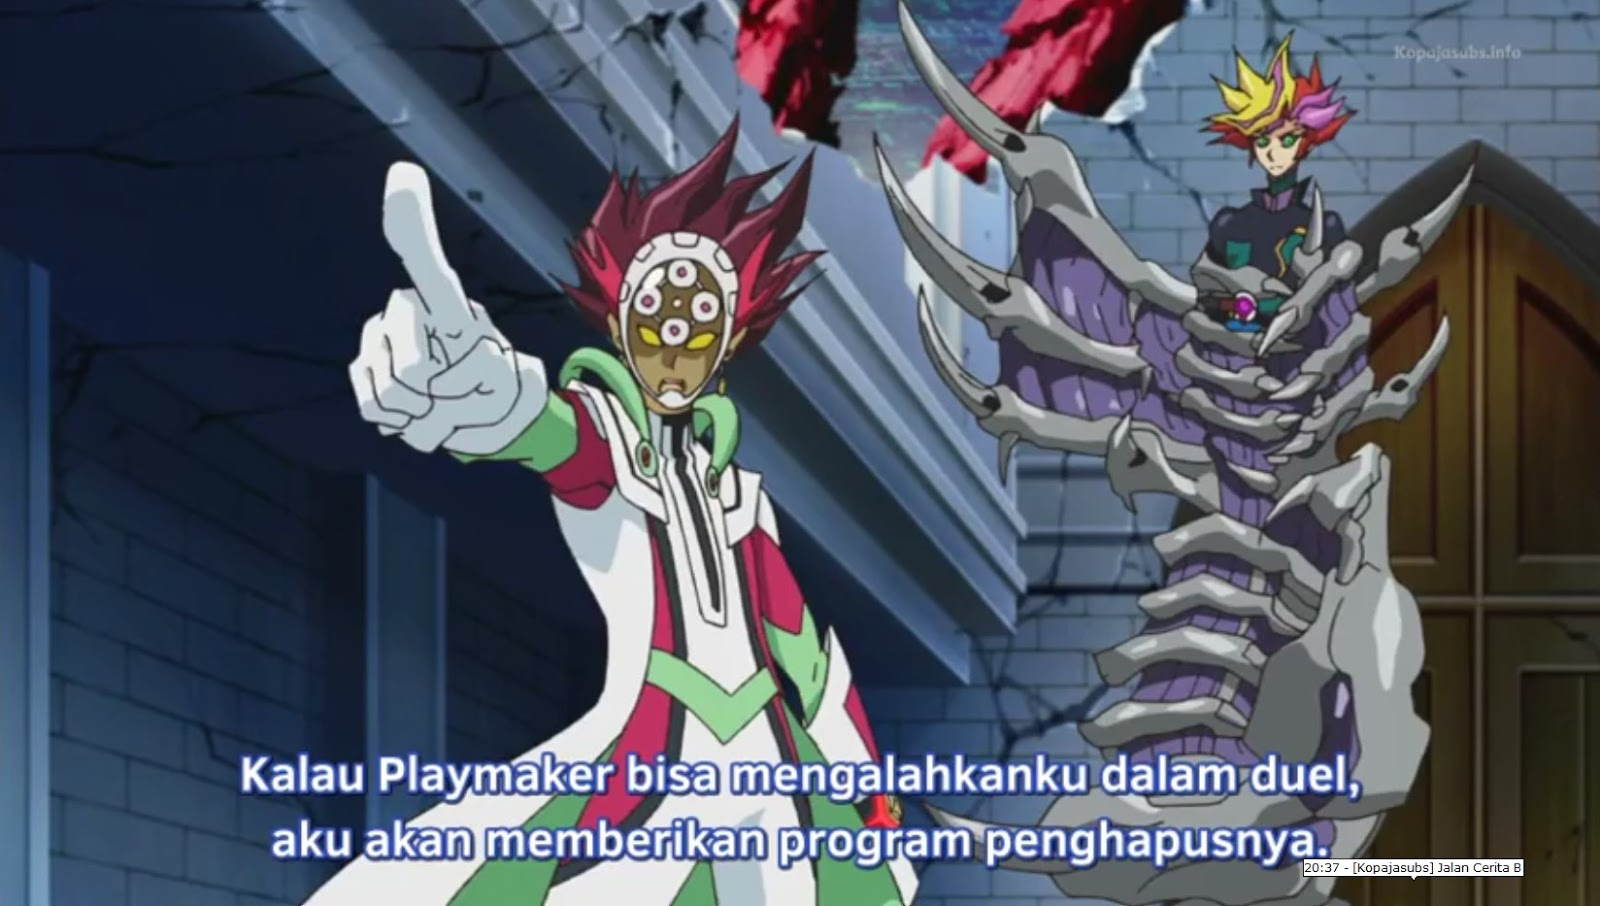 yu-gi-oh! vrains episode 8 subtitle indonesia | black avelic